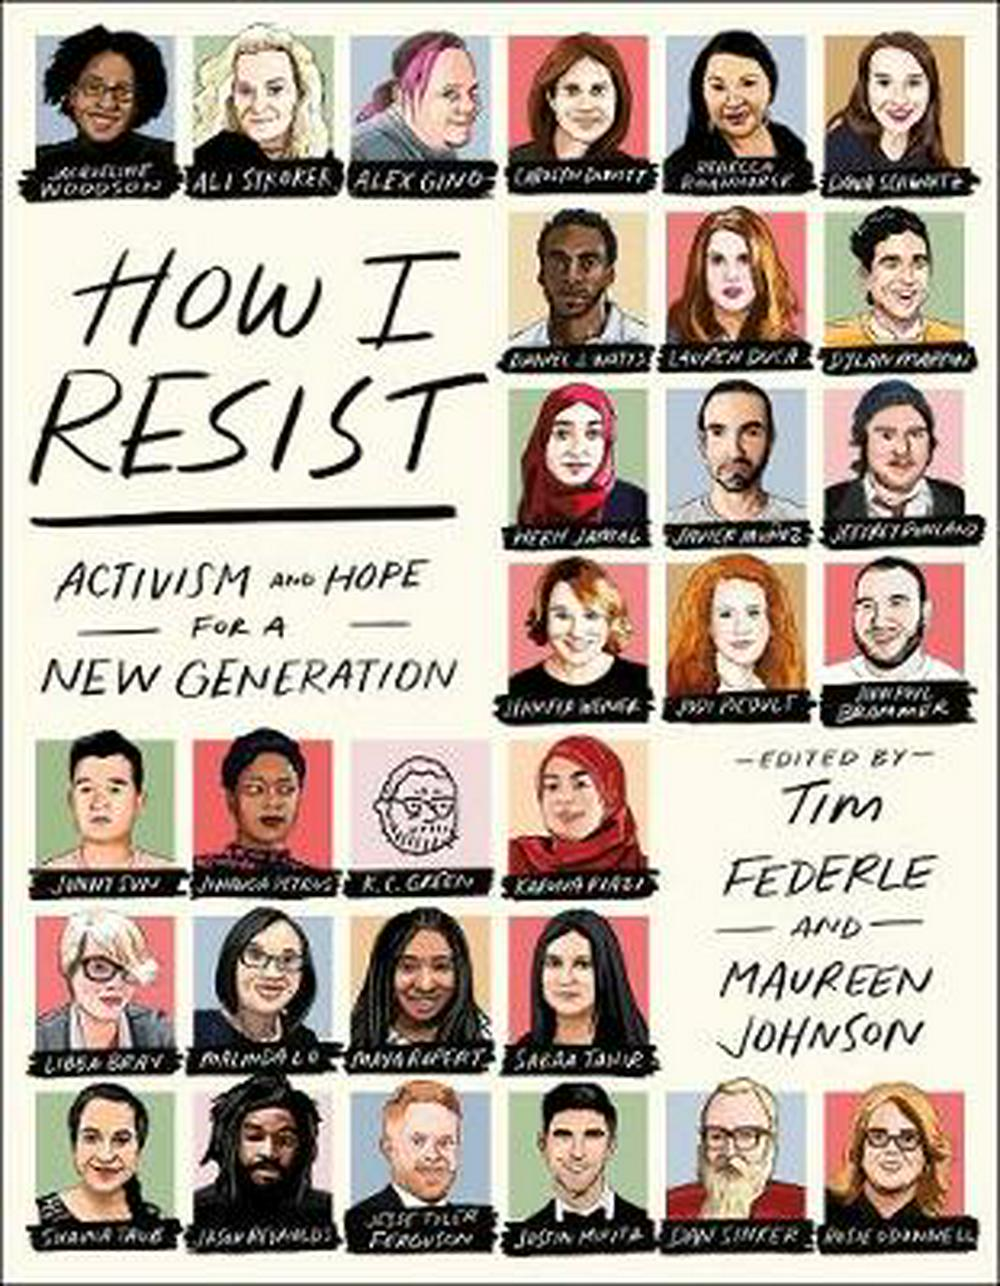 How I Resist: Activism and Hope for a New Generation by Tim Federle, ISBN: 9781250168368